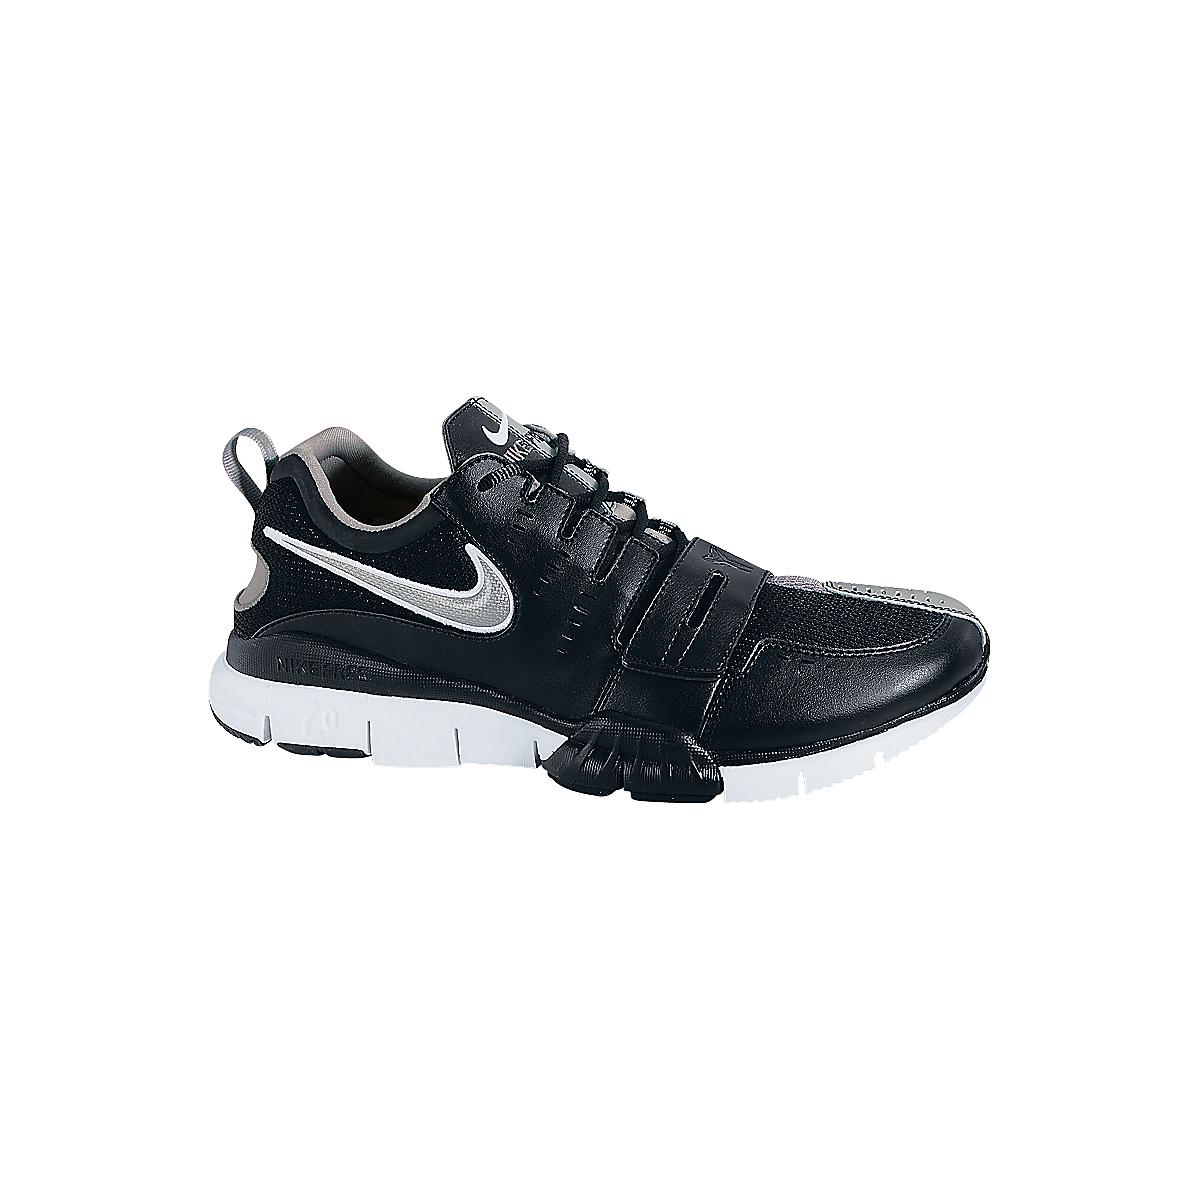 97f99d7aa18a4 Mens Nike Free Trainer 7.0 Cross Training Shoe at Road Runner Sports